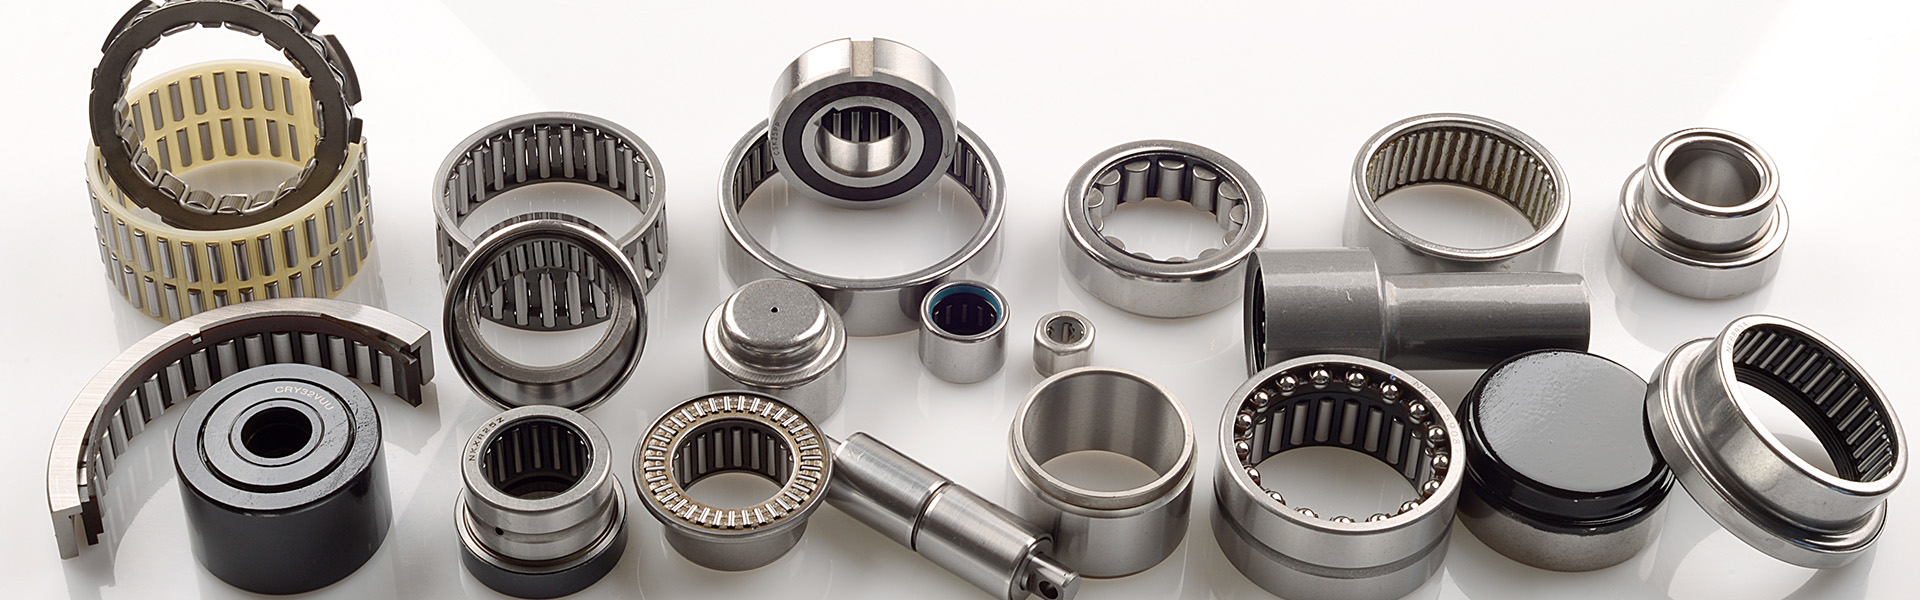 One Way Clutch Bearings